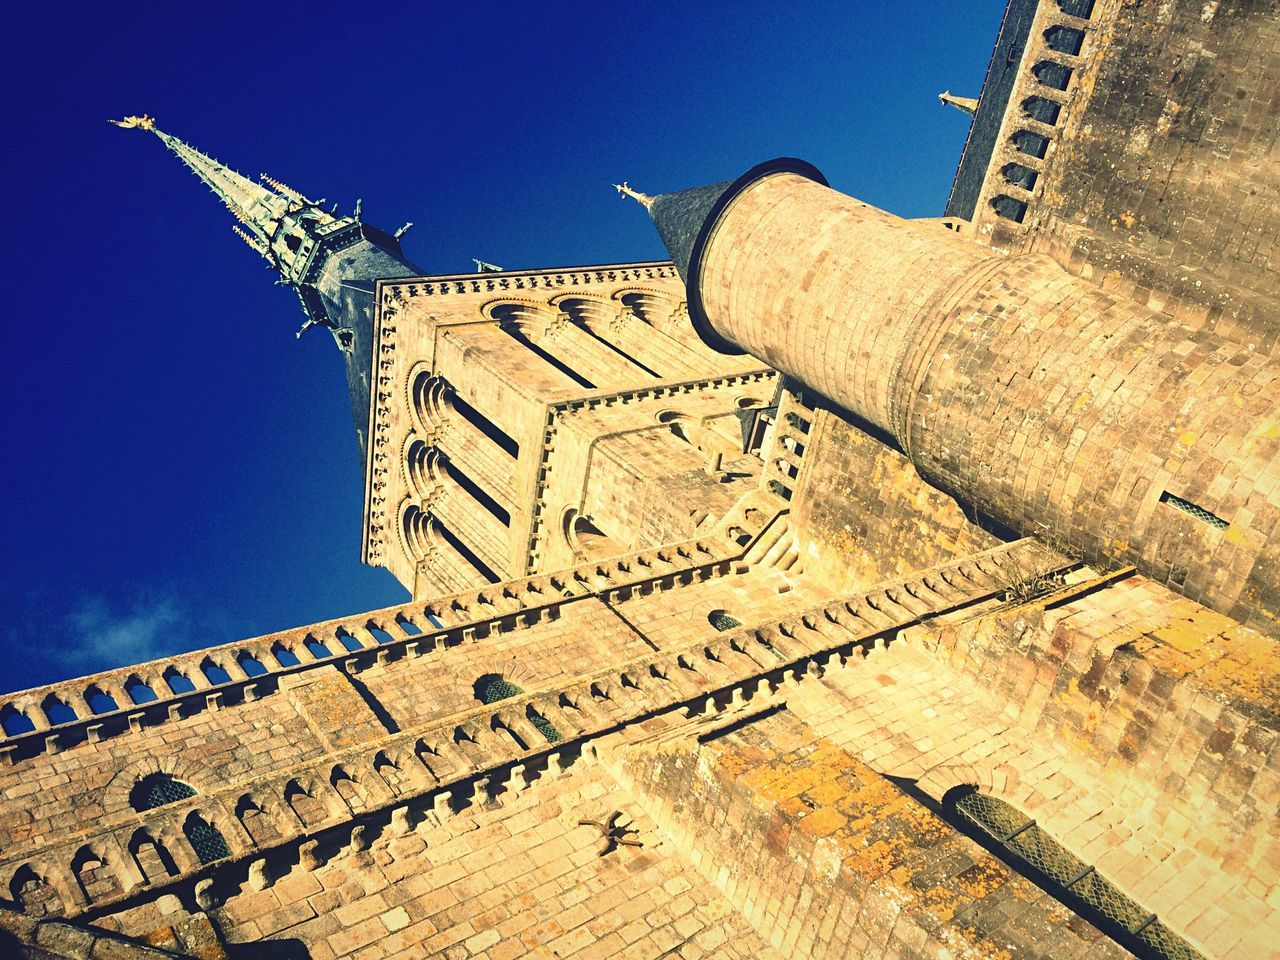 Architecture Built Structure Low Angle View History Blue Sunlight Outdoors No People Clear Sky Day Sky Ancient Mont Saint-Michel France